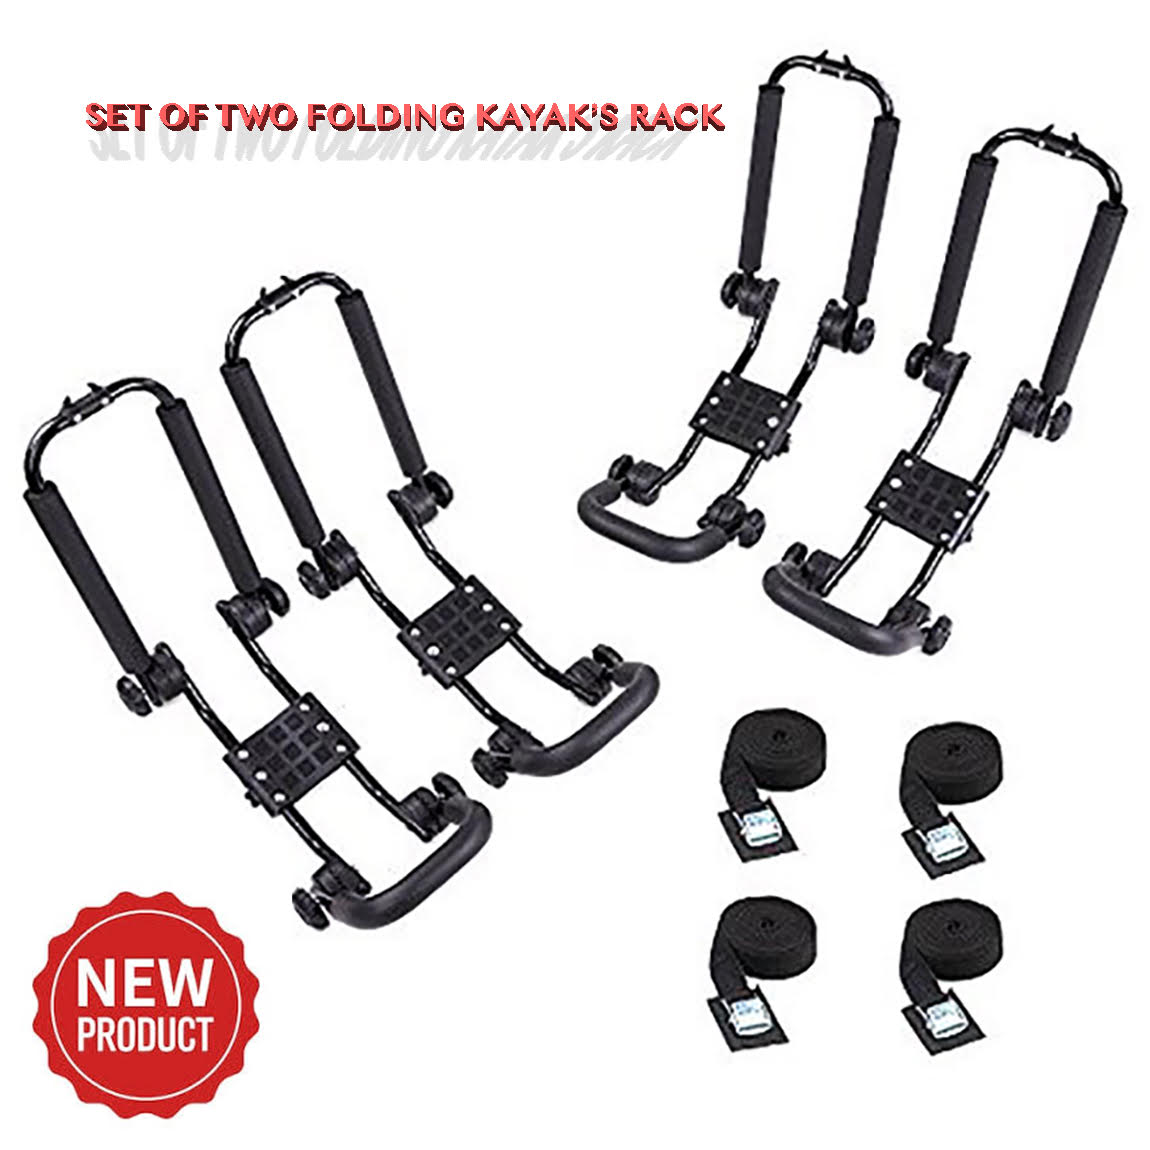 2 Pairs New Mode Multi-Functional Kayak Top Roof Carrier Canoe Boat Surf Ski Snow Board by China